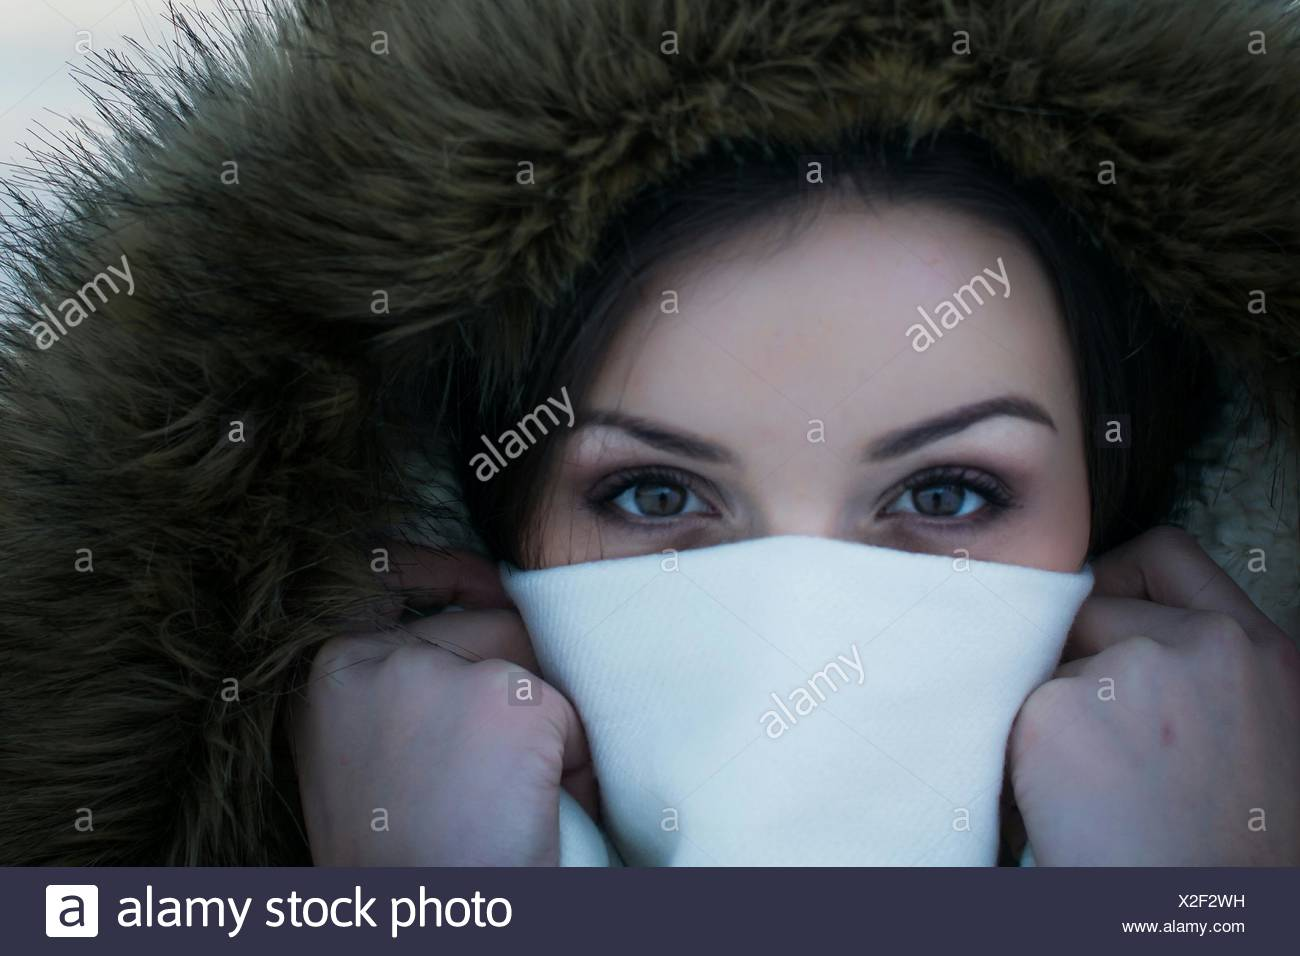 Close-Up Portrait of Young Woman Covering Face avec serviette Photo Stock